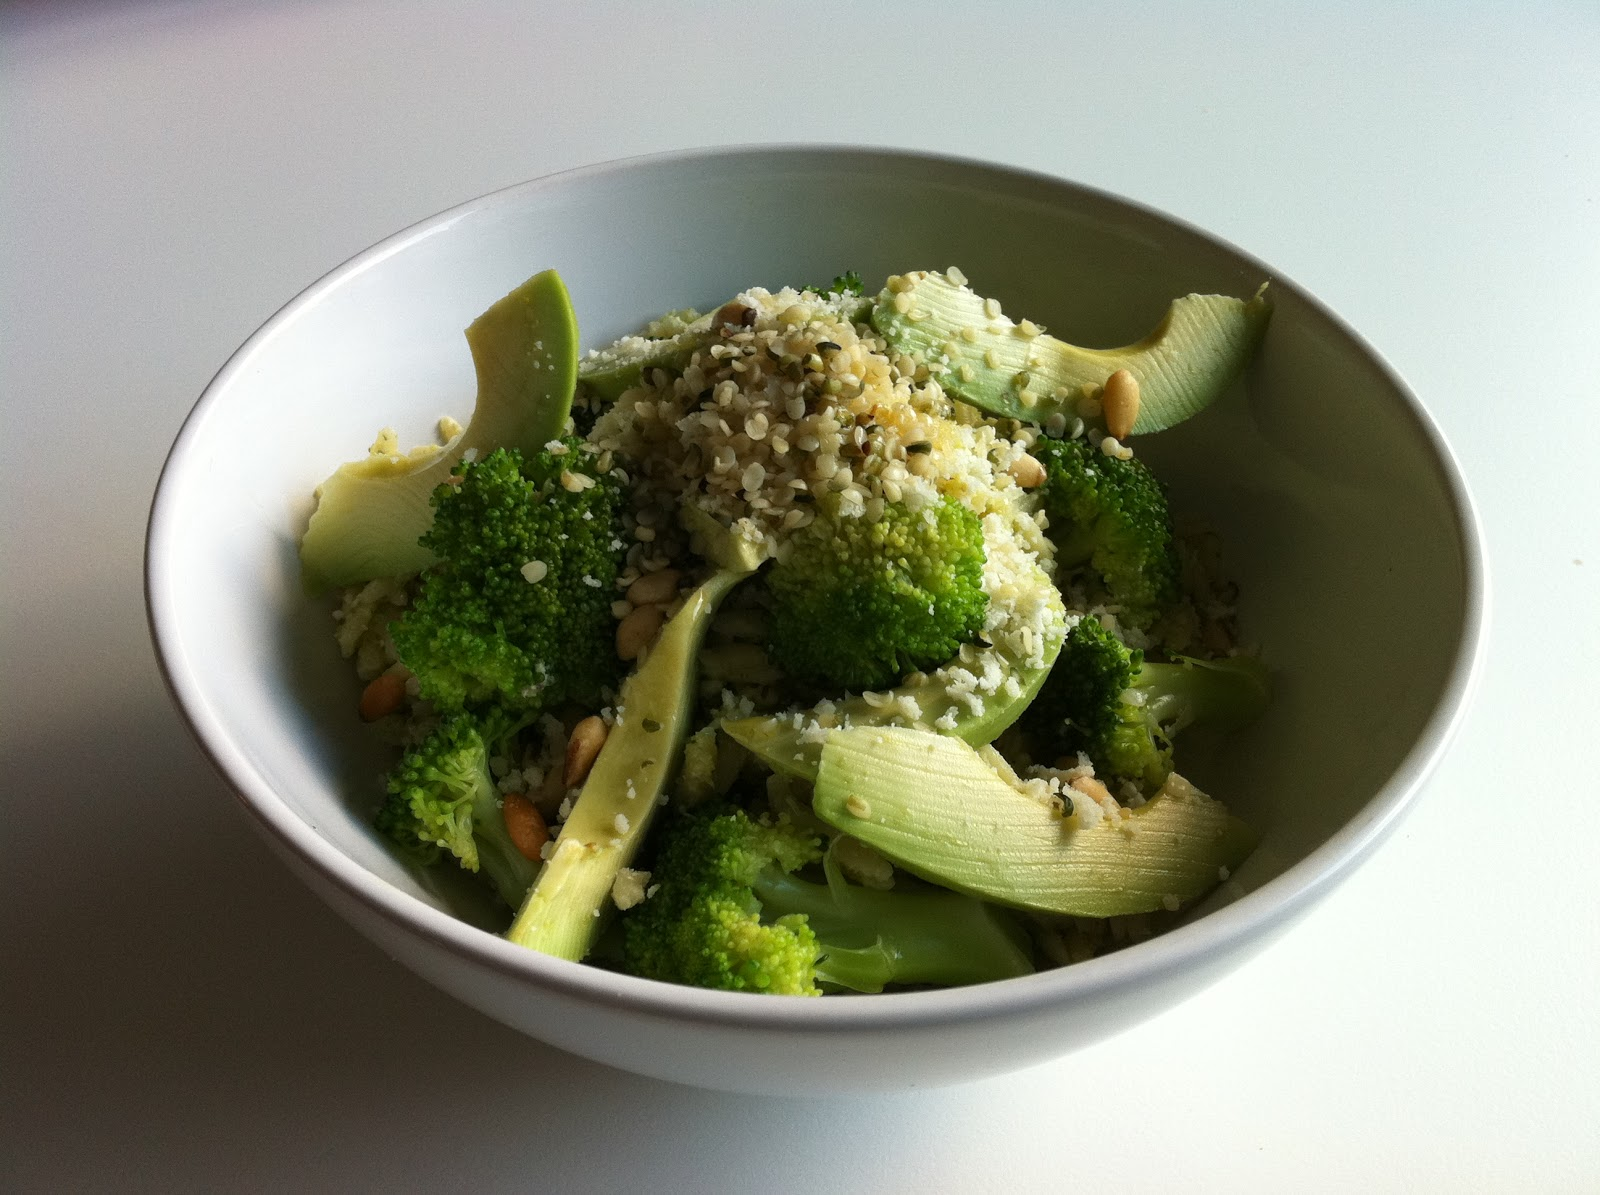 table etc.: orzo+broccoli pesto salad